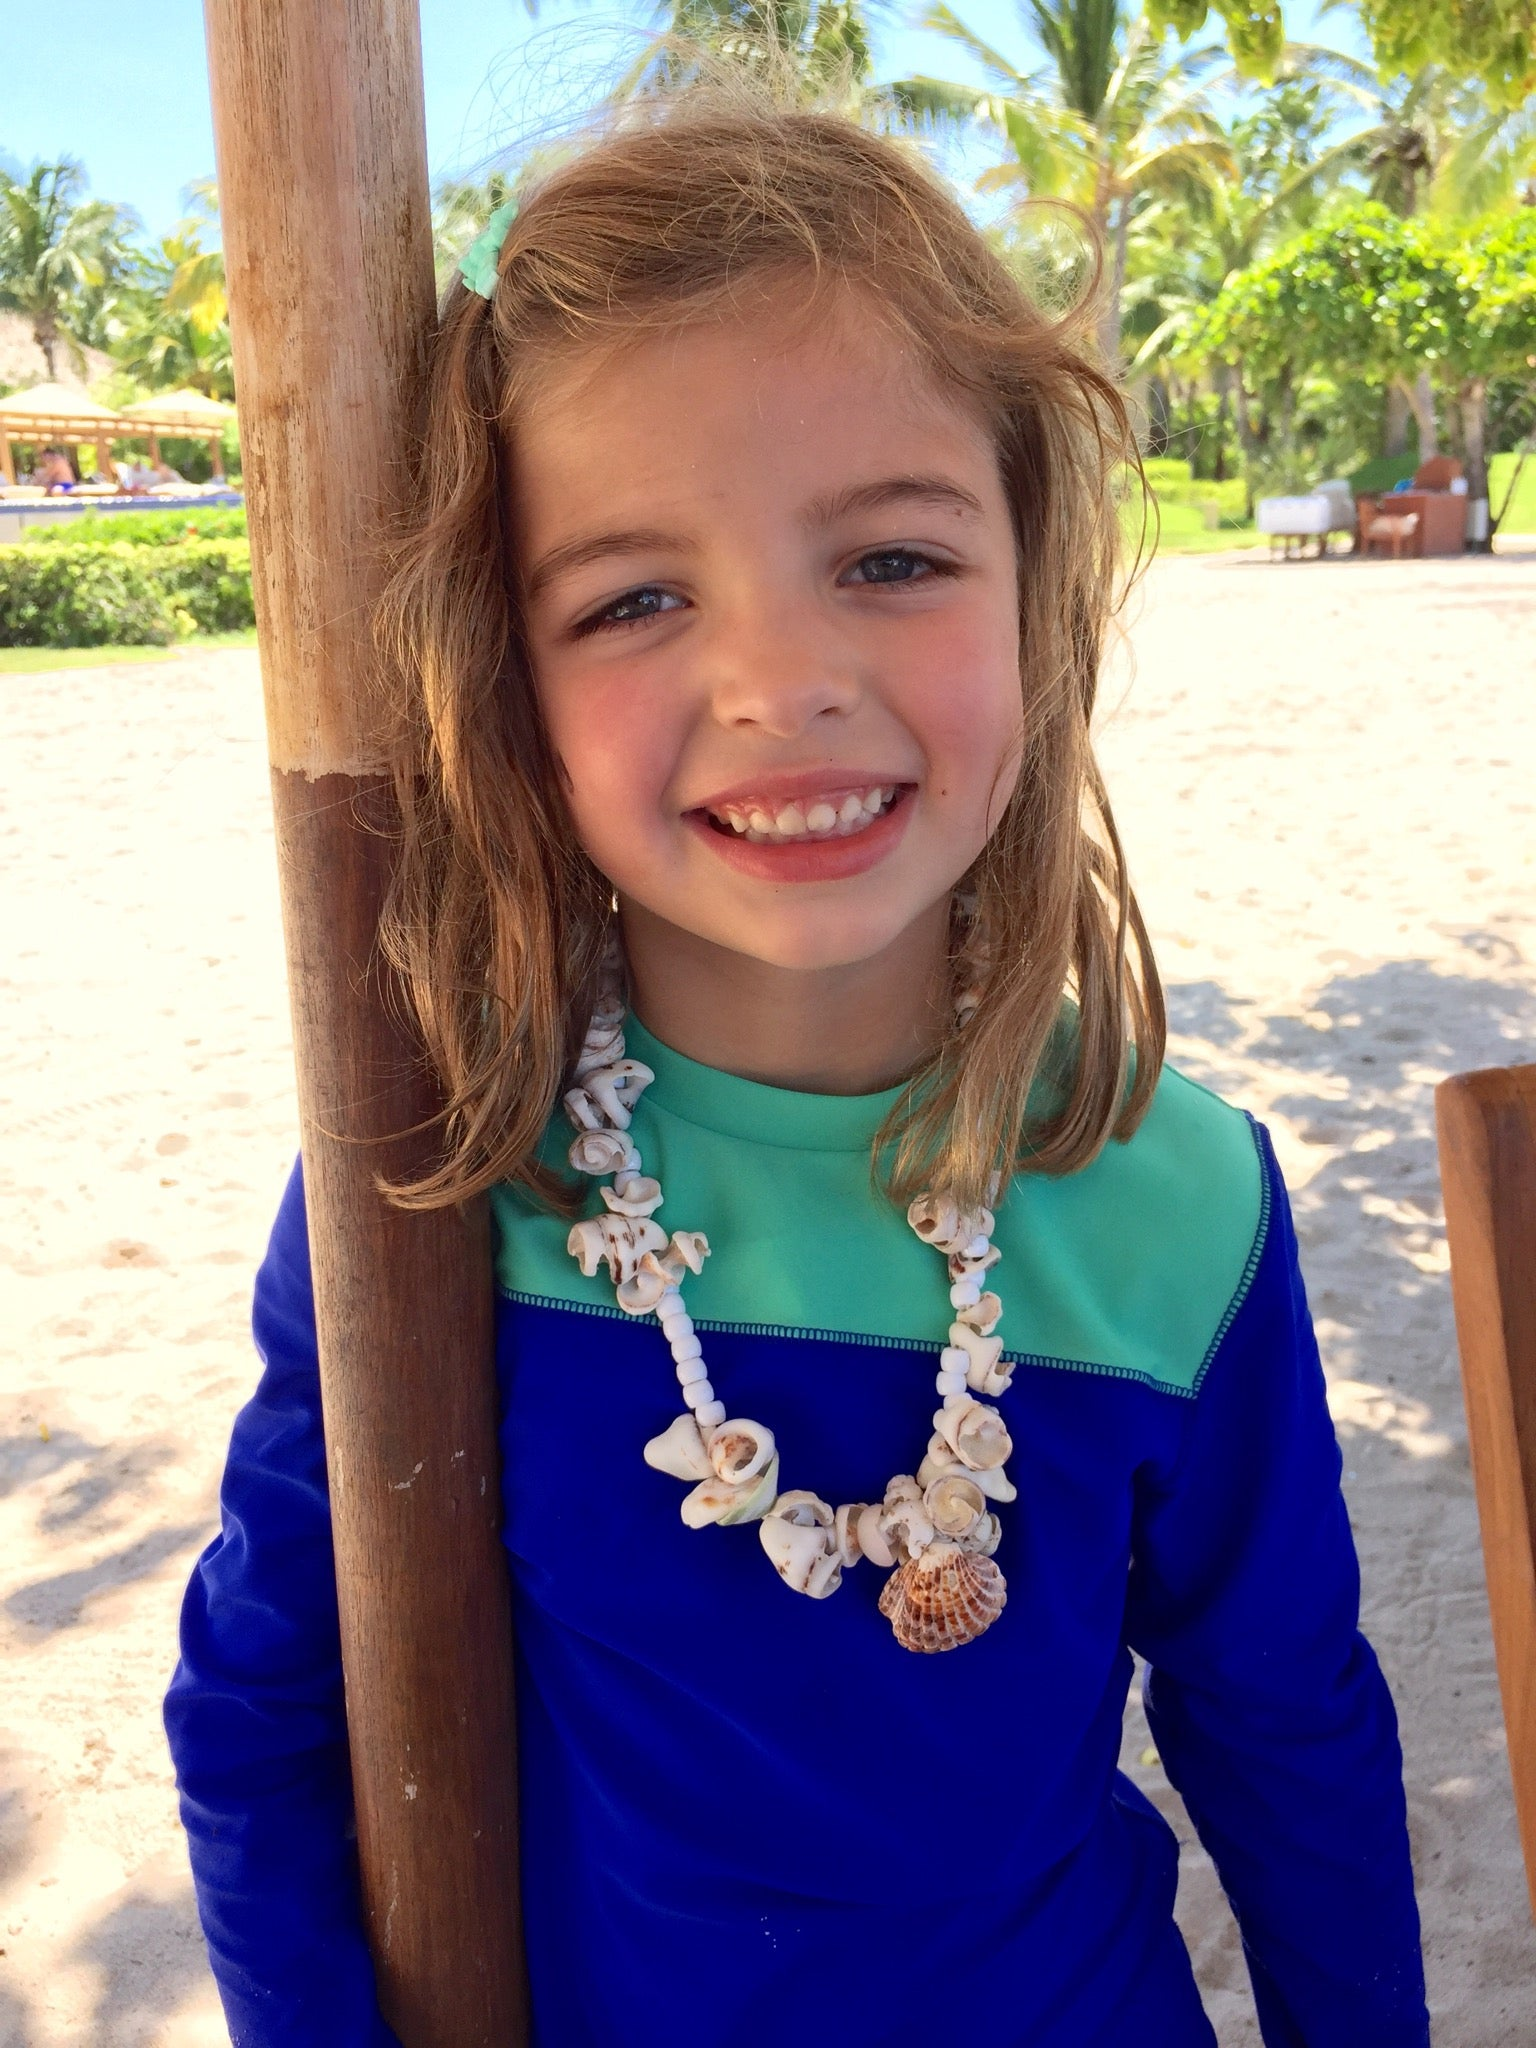 Our daughter loved making necklaces at the free St. Regis Punta Mita Kid